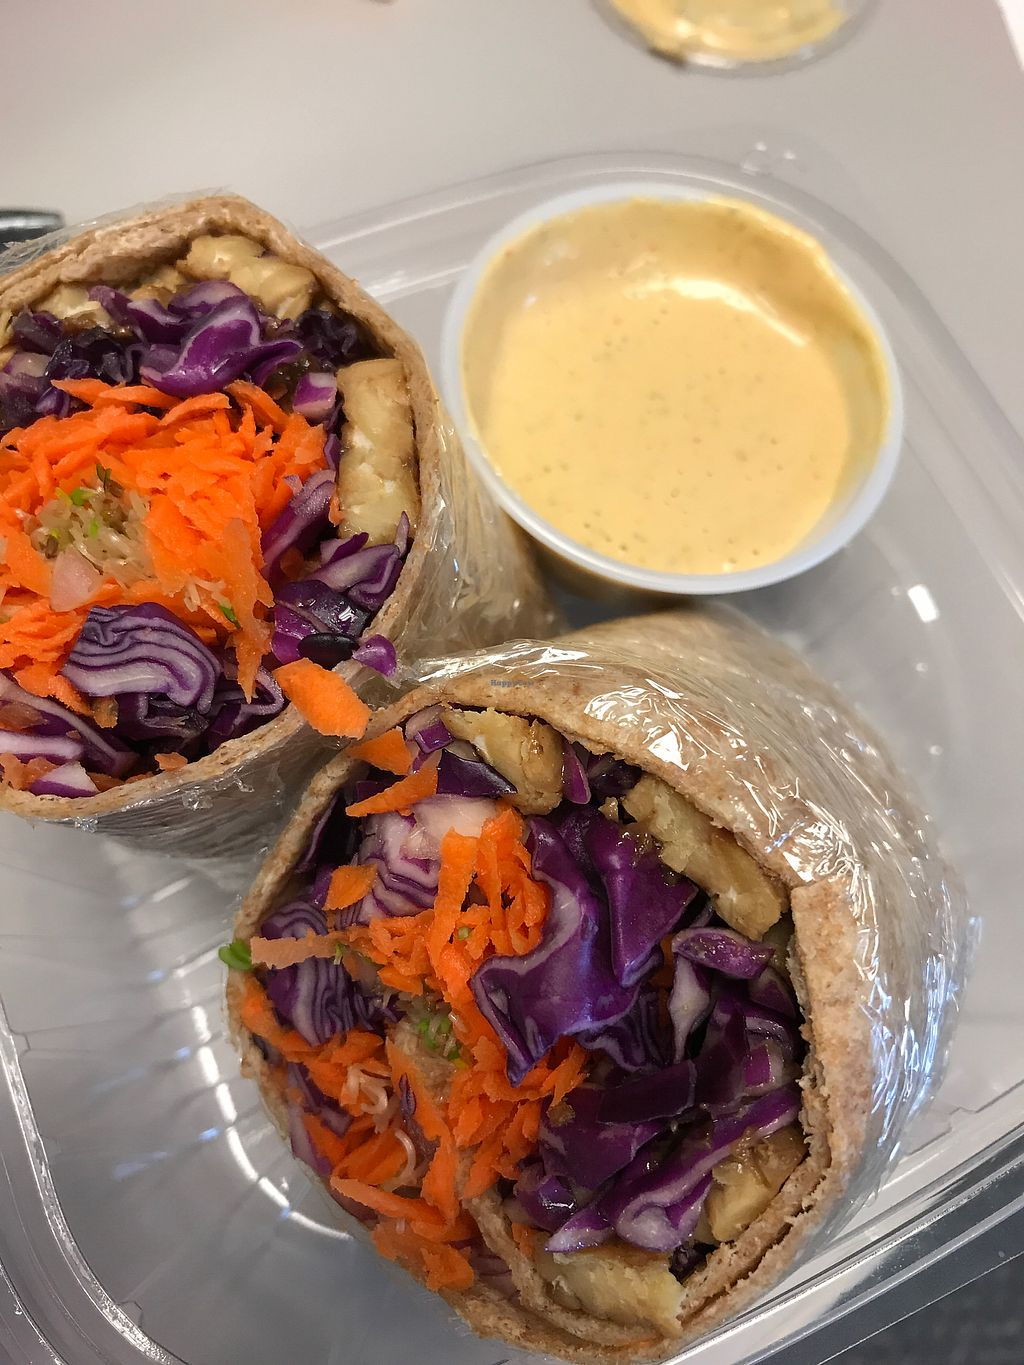 """Photo of Fresh Squeeze  by <a href=""""/members/profile/DonR22"""">DonR22</a> <br/>Indonesian Wrap <br/> August 10, 2017  - <a href='/contact/abuse/image/66874/291247'>Report</a>"""